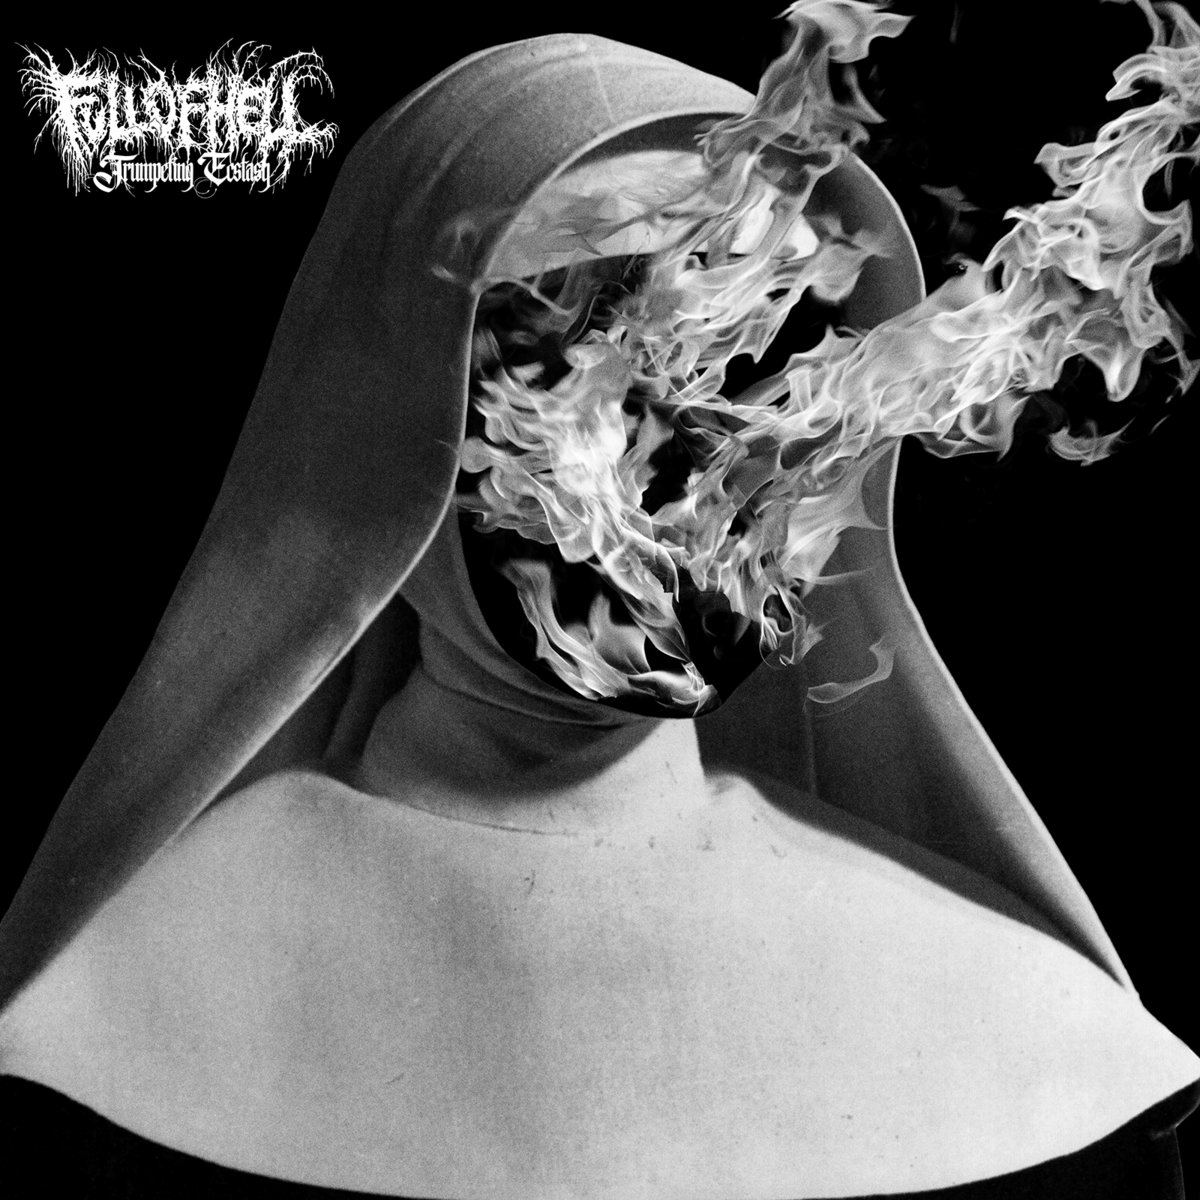 Trumpeting Ecstasy | Full of Hell